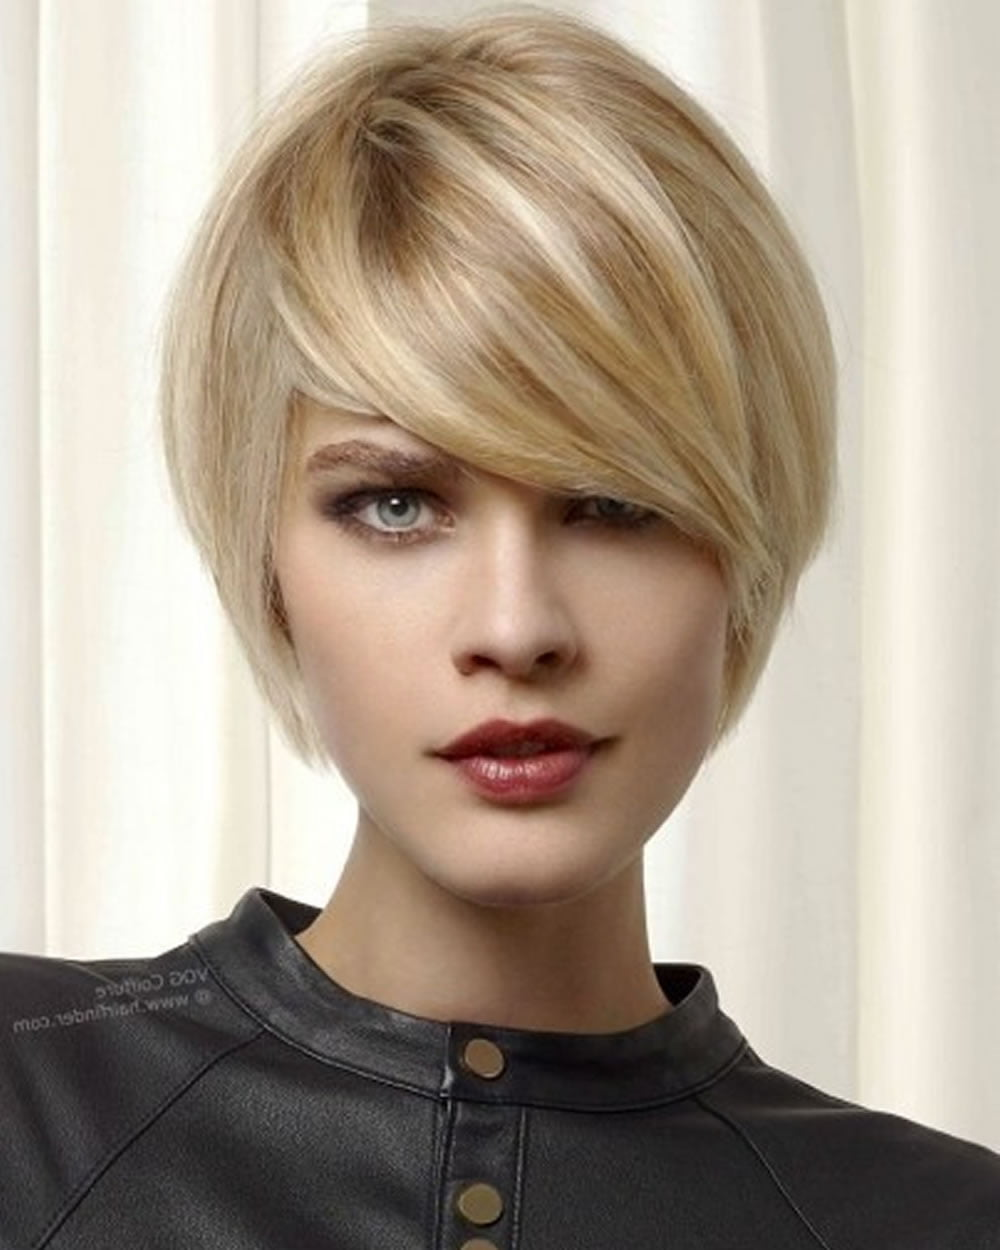 Short Hair Models 2018 Newest Short Haircut Designs For